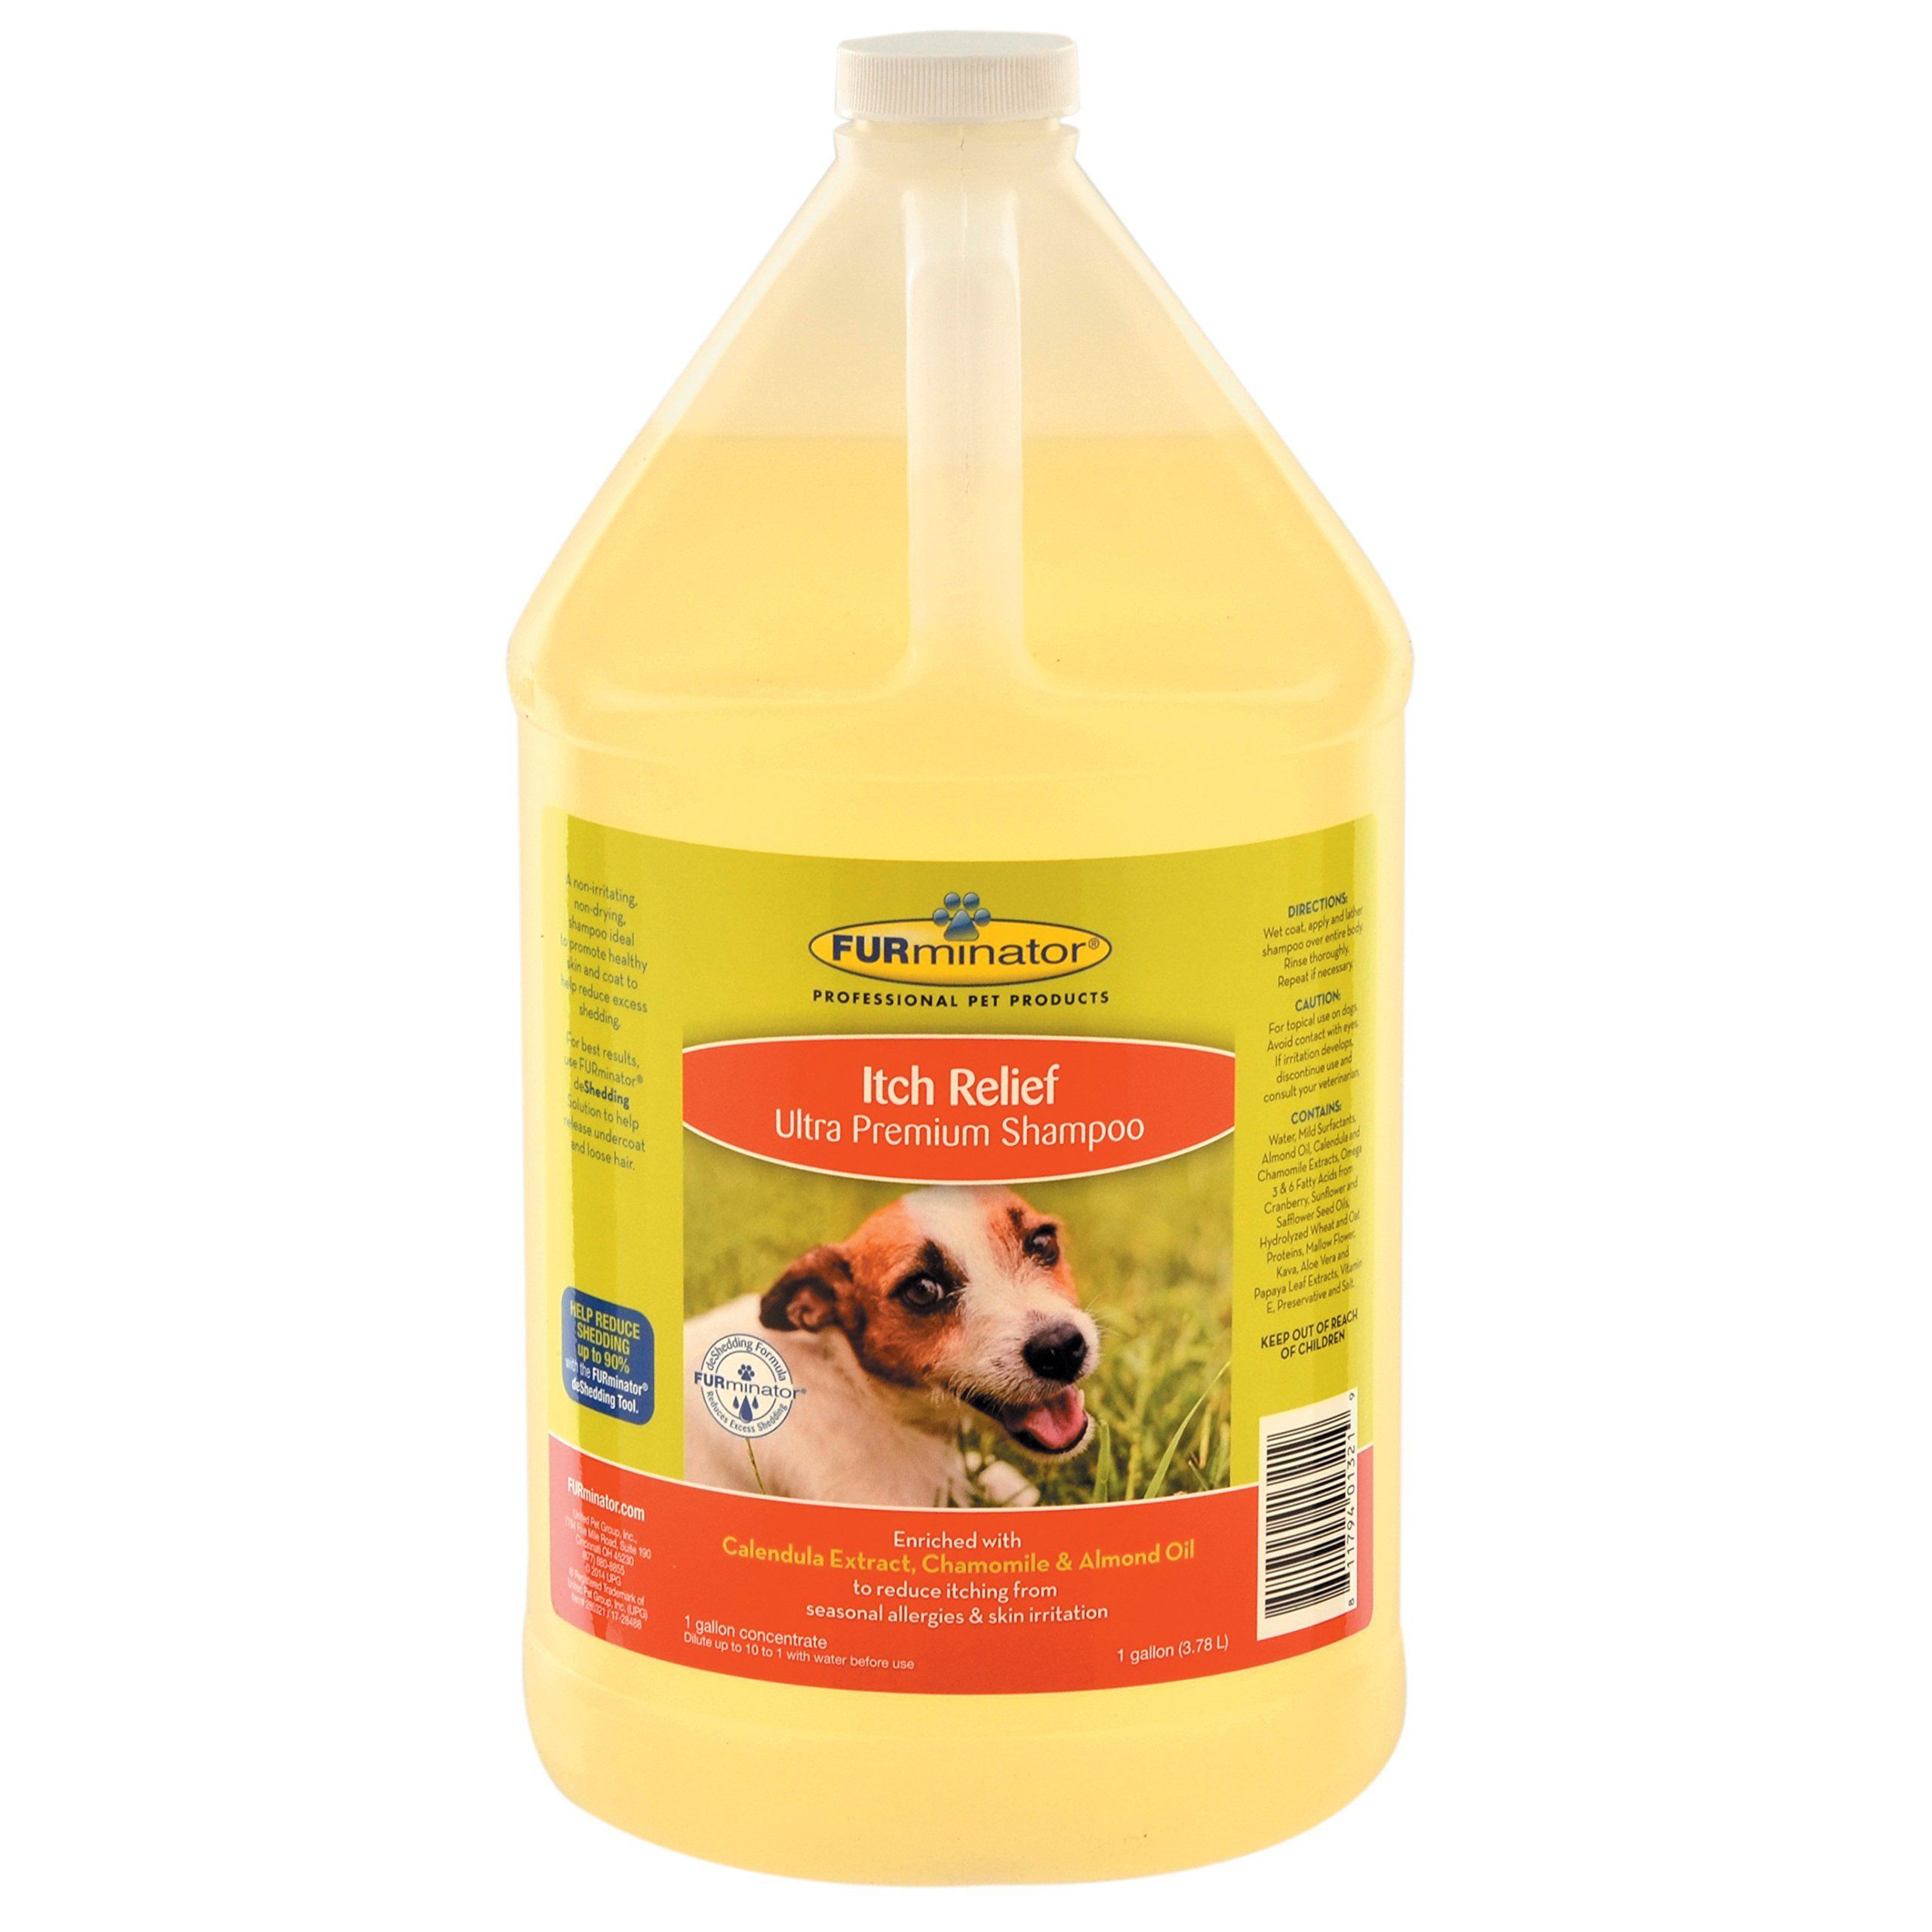 FURminator Itch Relief Shampoo Itch relief, Dog grooming